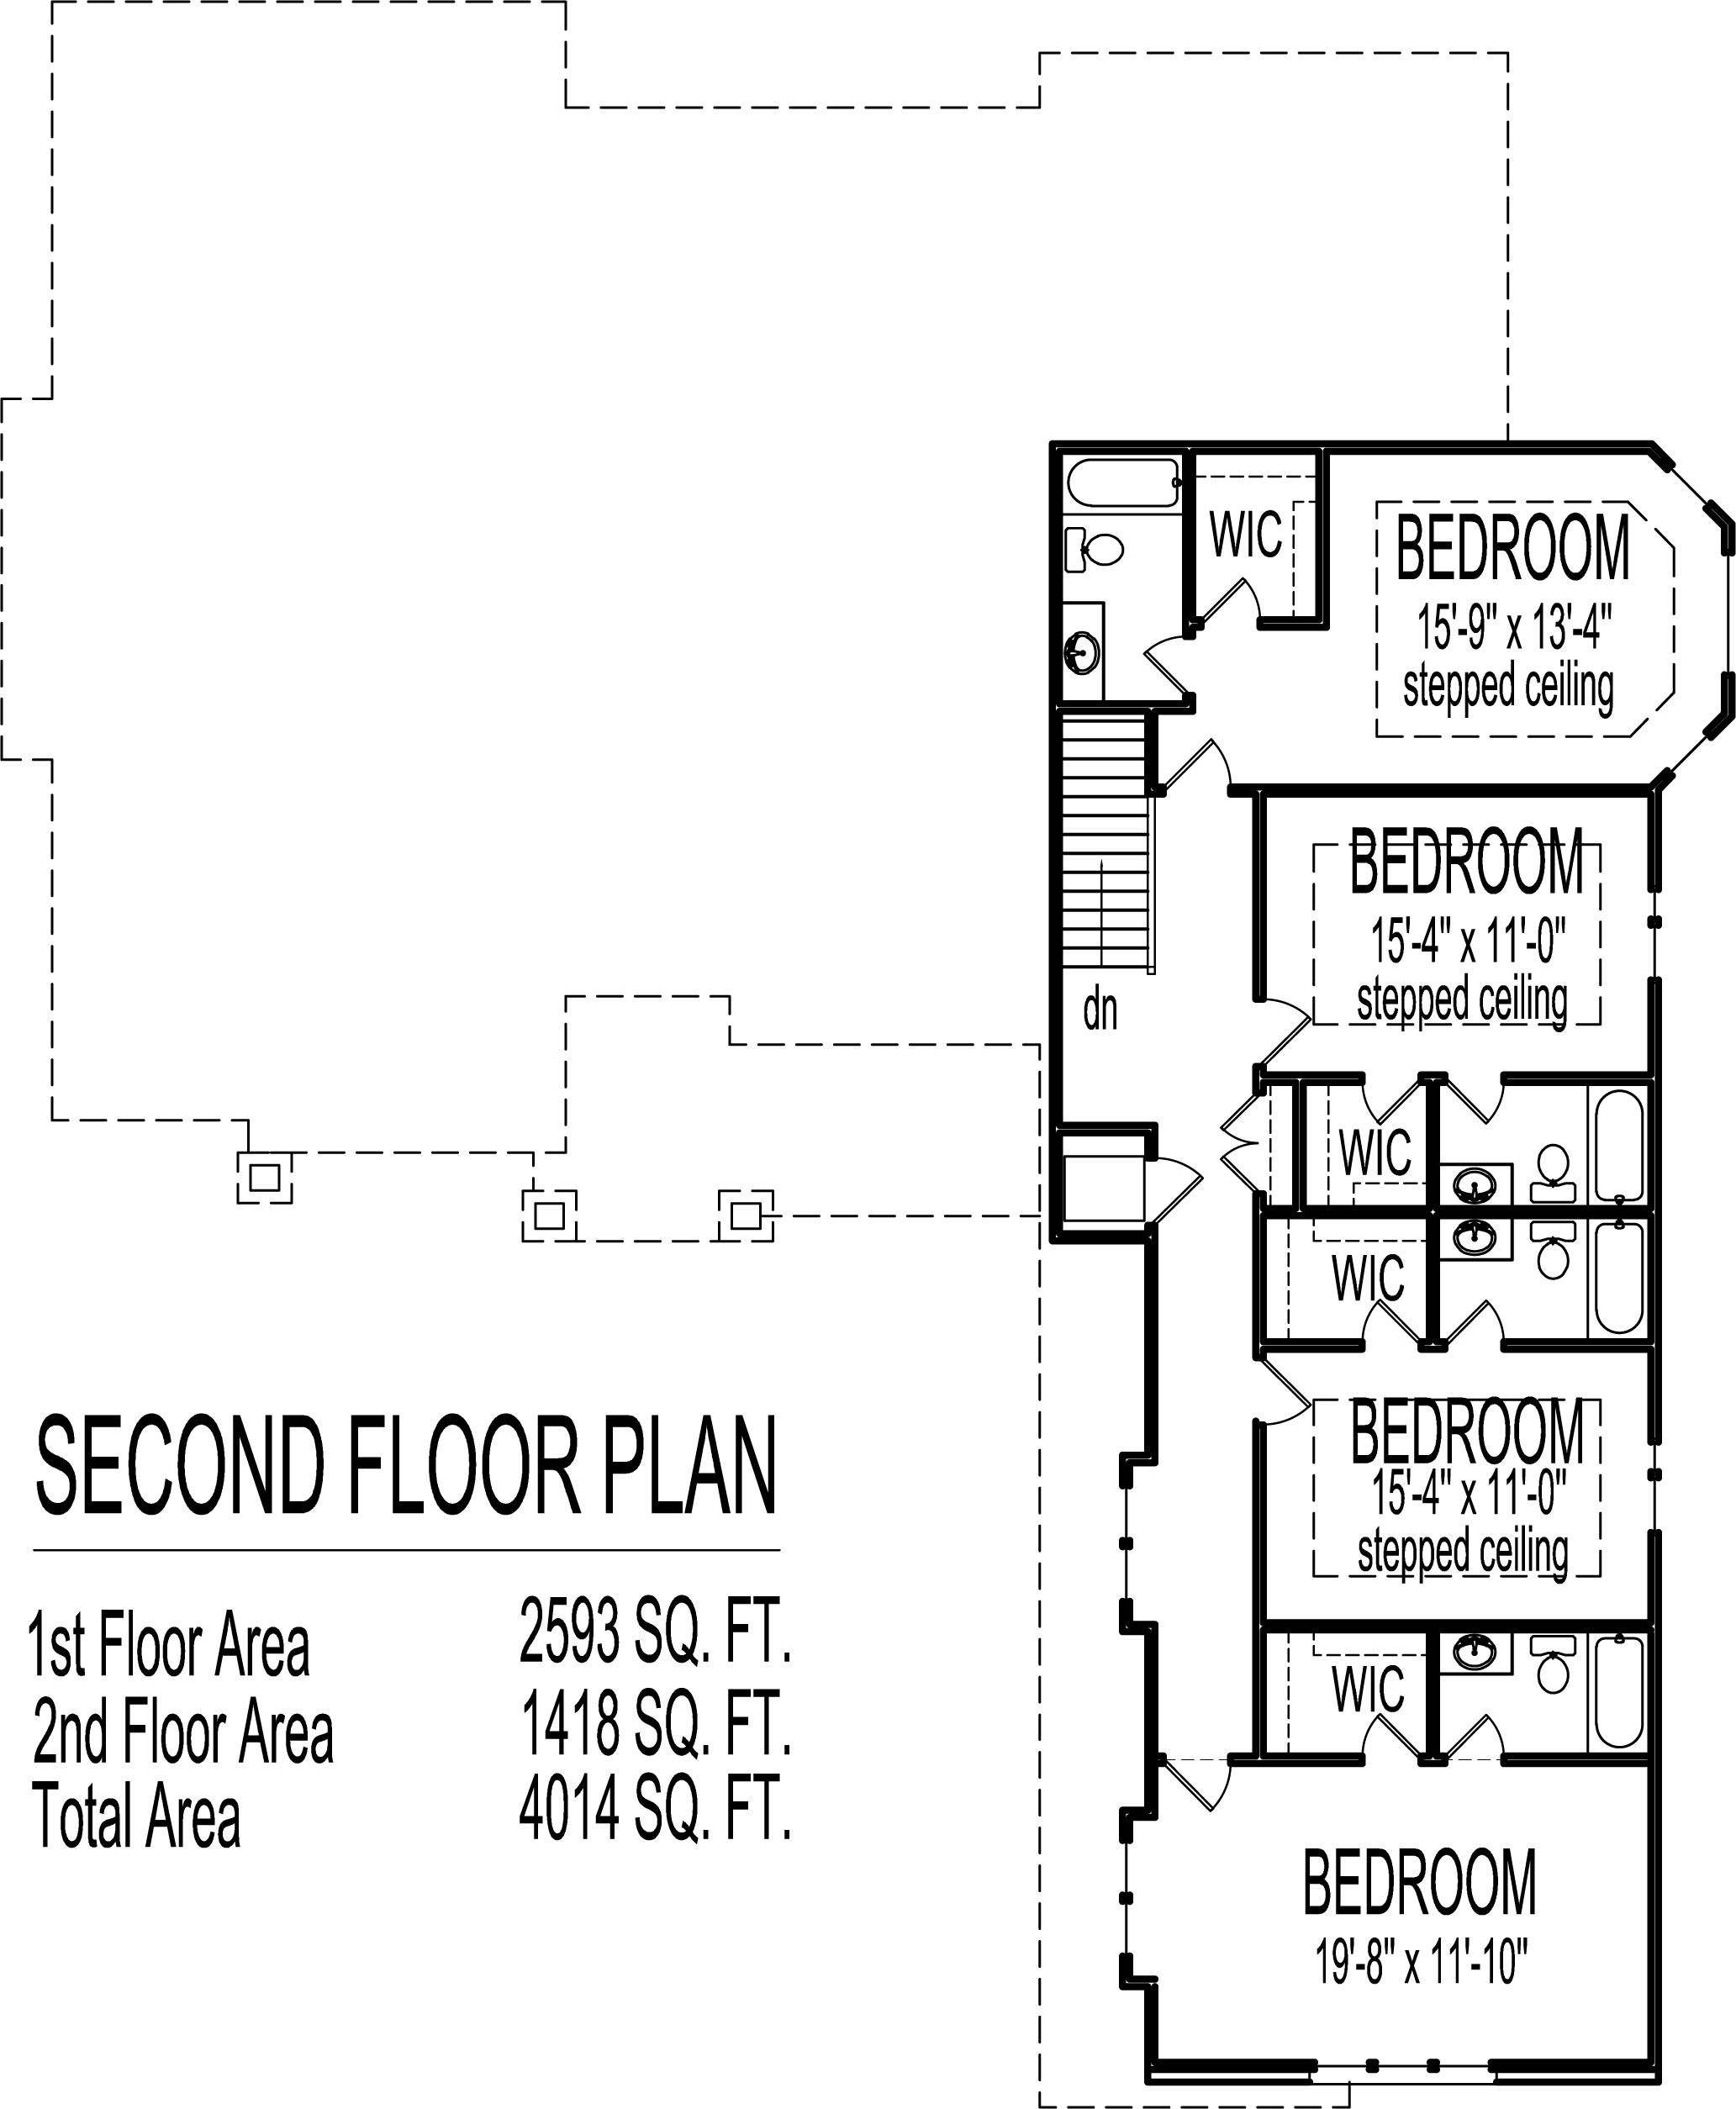 Bungalow floor plans Salt Lake City Utah UT Provo Sioux Falls South Dakota  SD Rapid City 2 storey house with 5 bedrooms. 5 Bedroom Bungalow House Plans Drawings 2 Story Home Designs